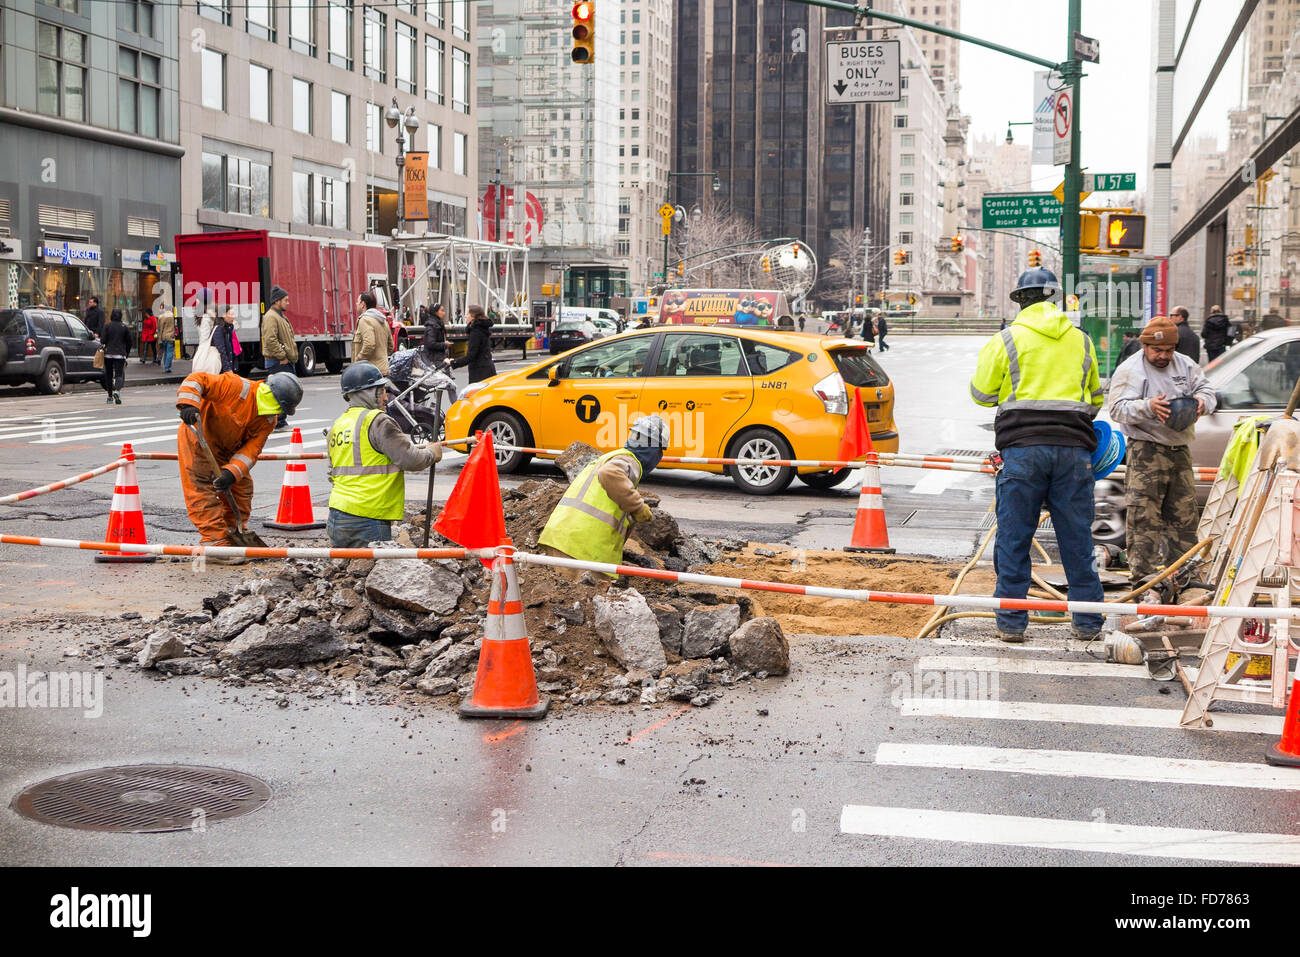 Public workers digging a hole on the street of New York City to perform repair - roped off to secure the area Stock Photo